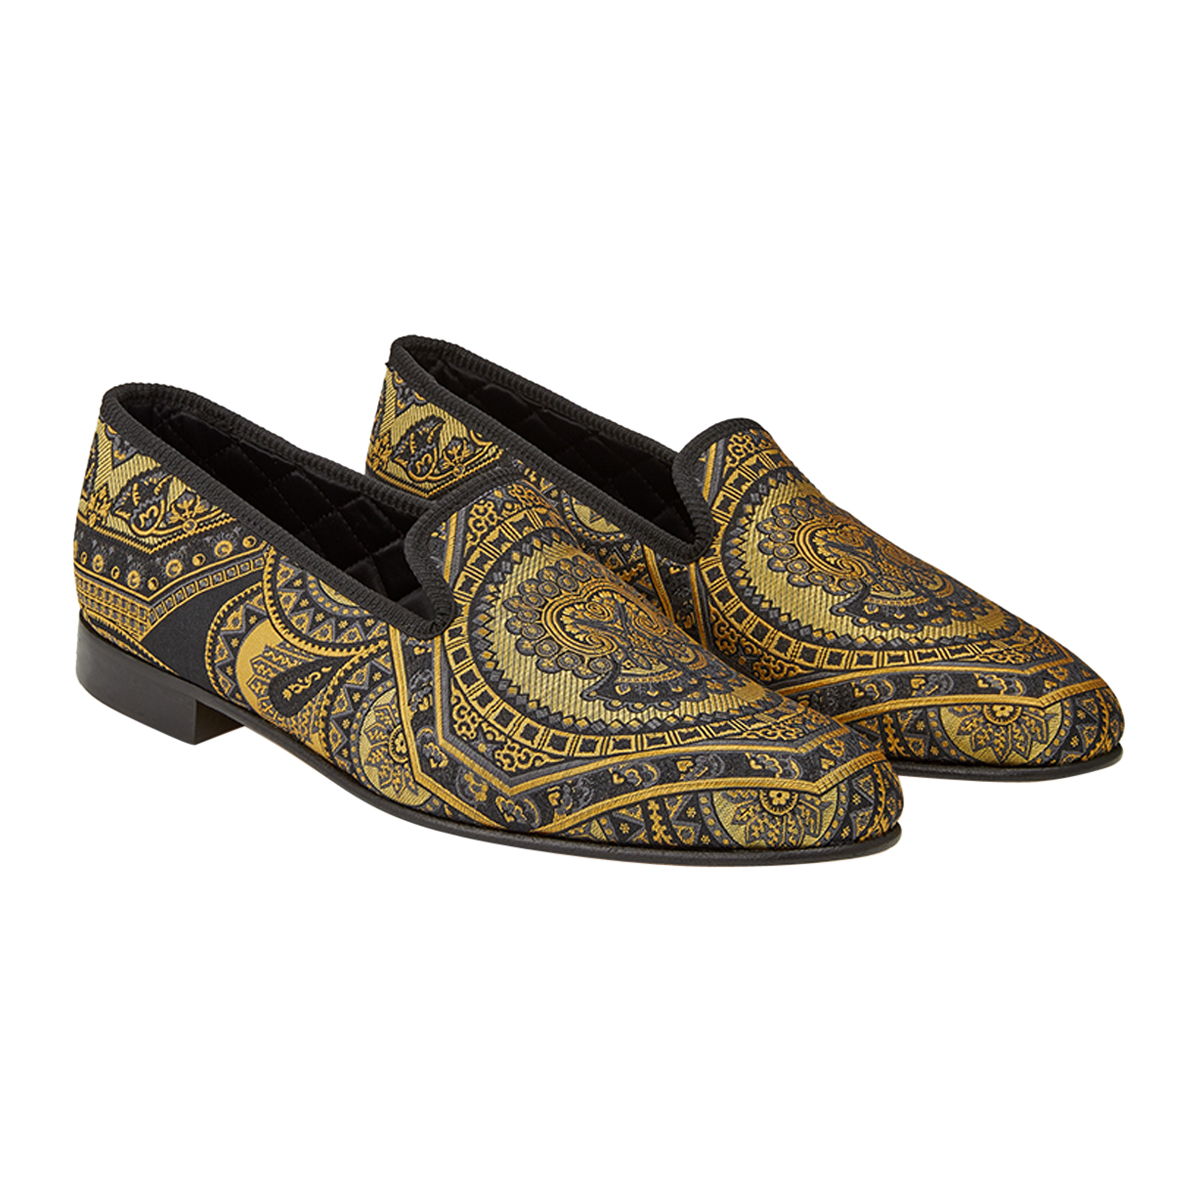 Black And Gold Skull & Crossbone Silk Slippers